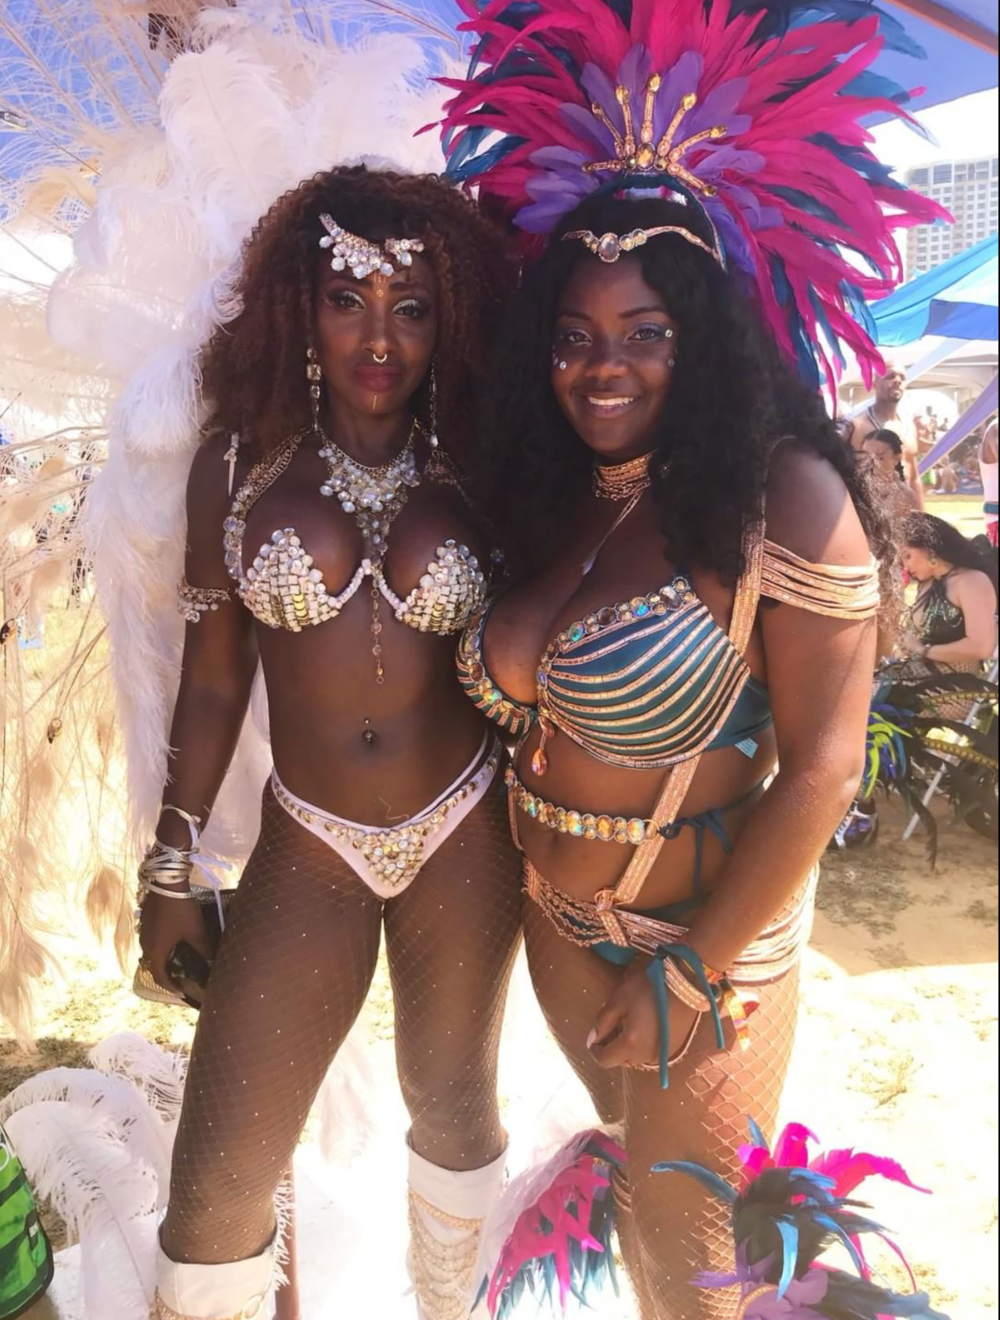 Right:Follower, @ heyyychanelle  celebrating Carnival in Trinidad 😍